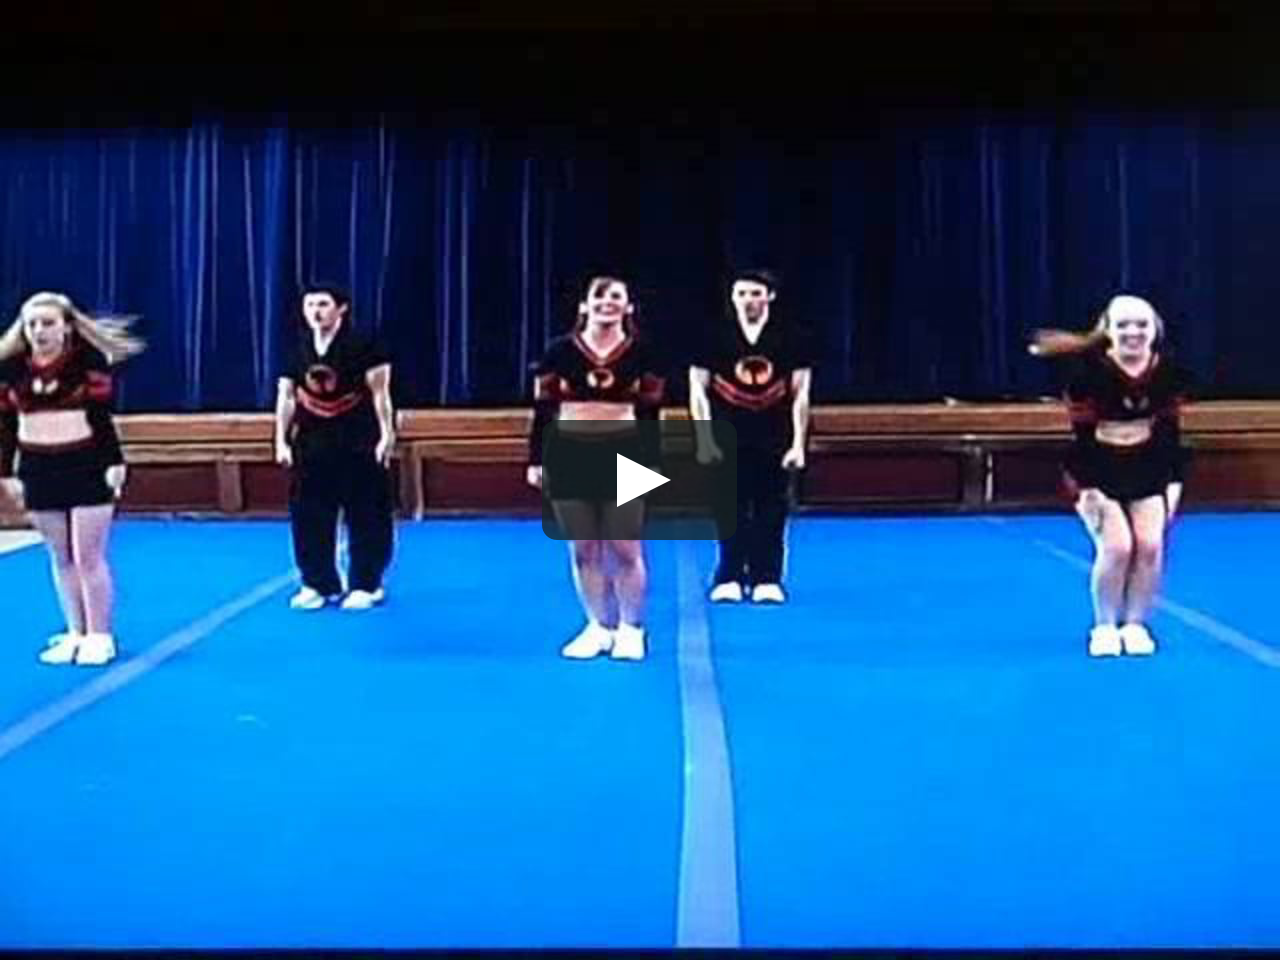 Sidelinestar Com Is The 1 Site For Cheer Videos Cheerleading Cheers Cheerleading Chants And Cheer Dance Cheerleading Cheers Cheer Routines Competitive Cheer